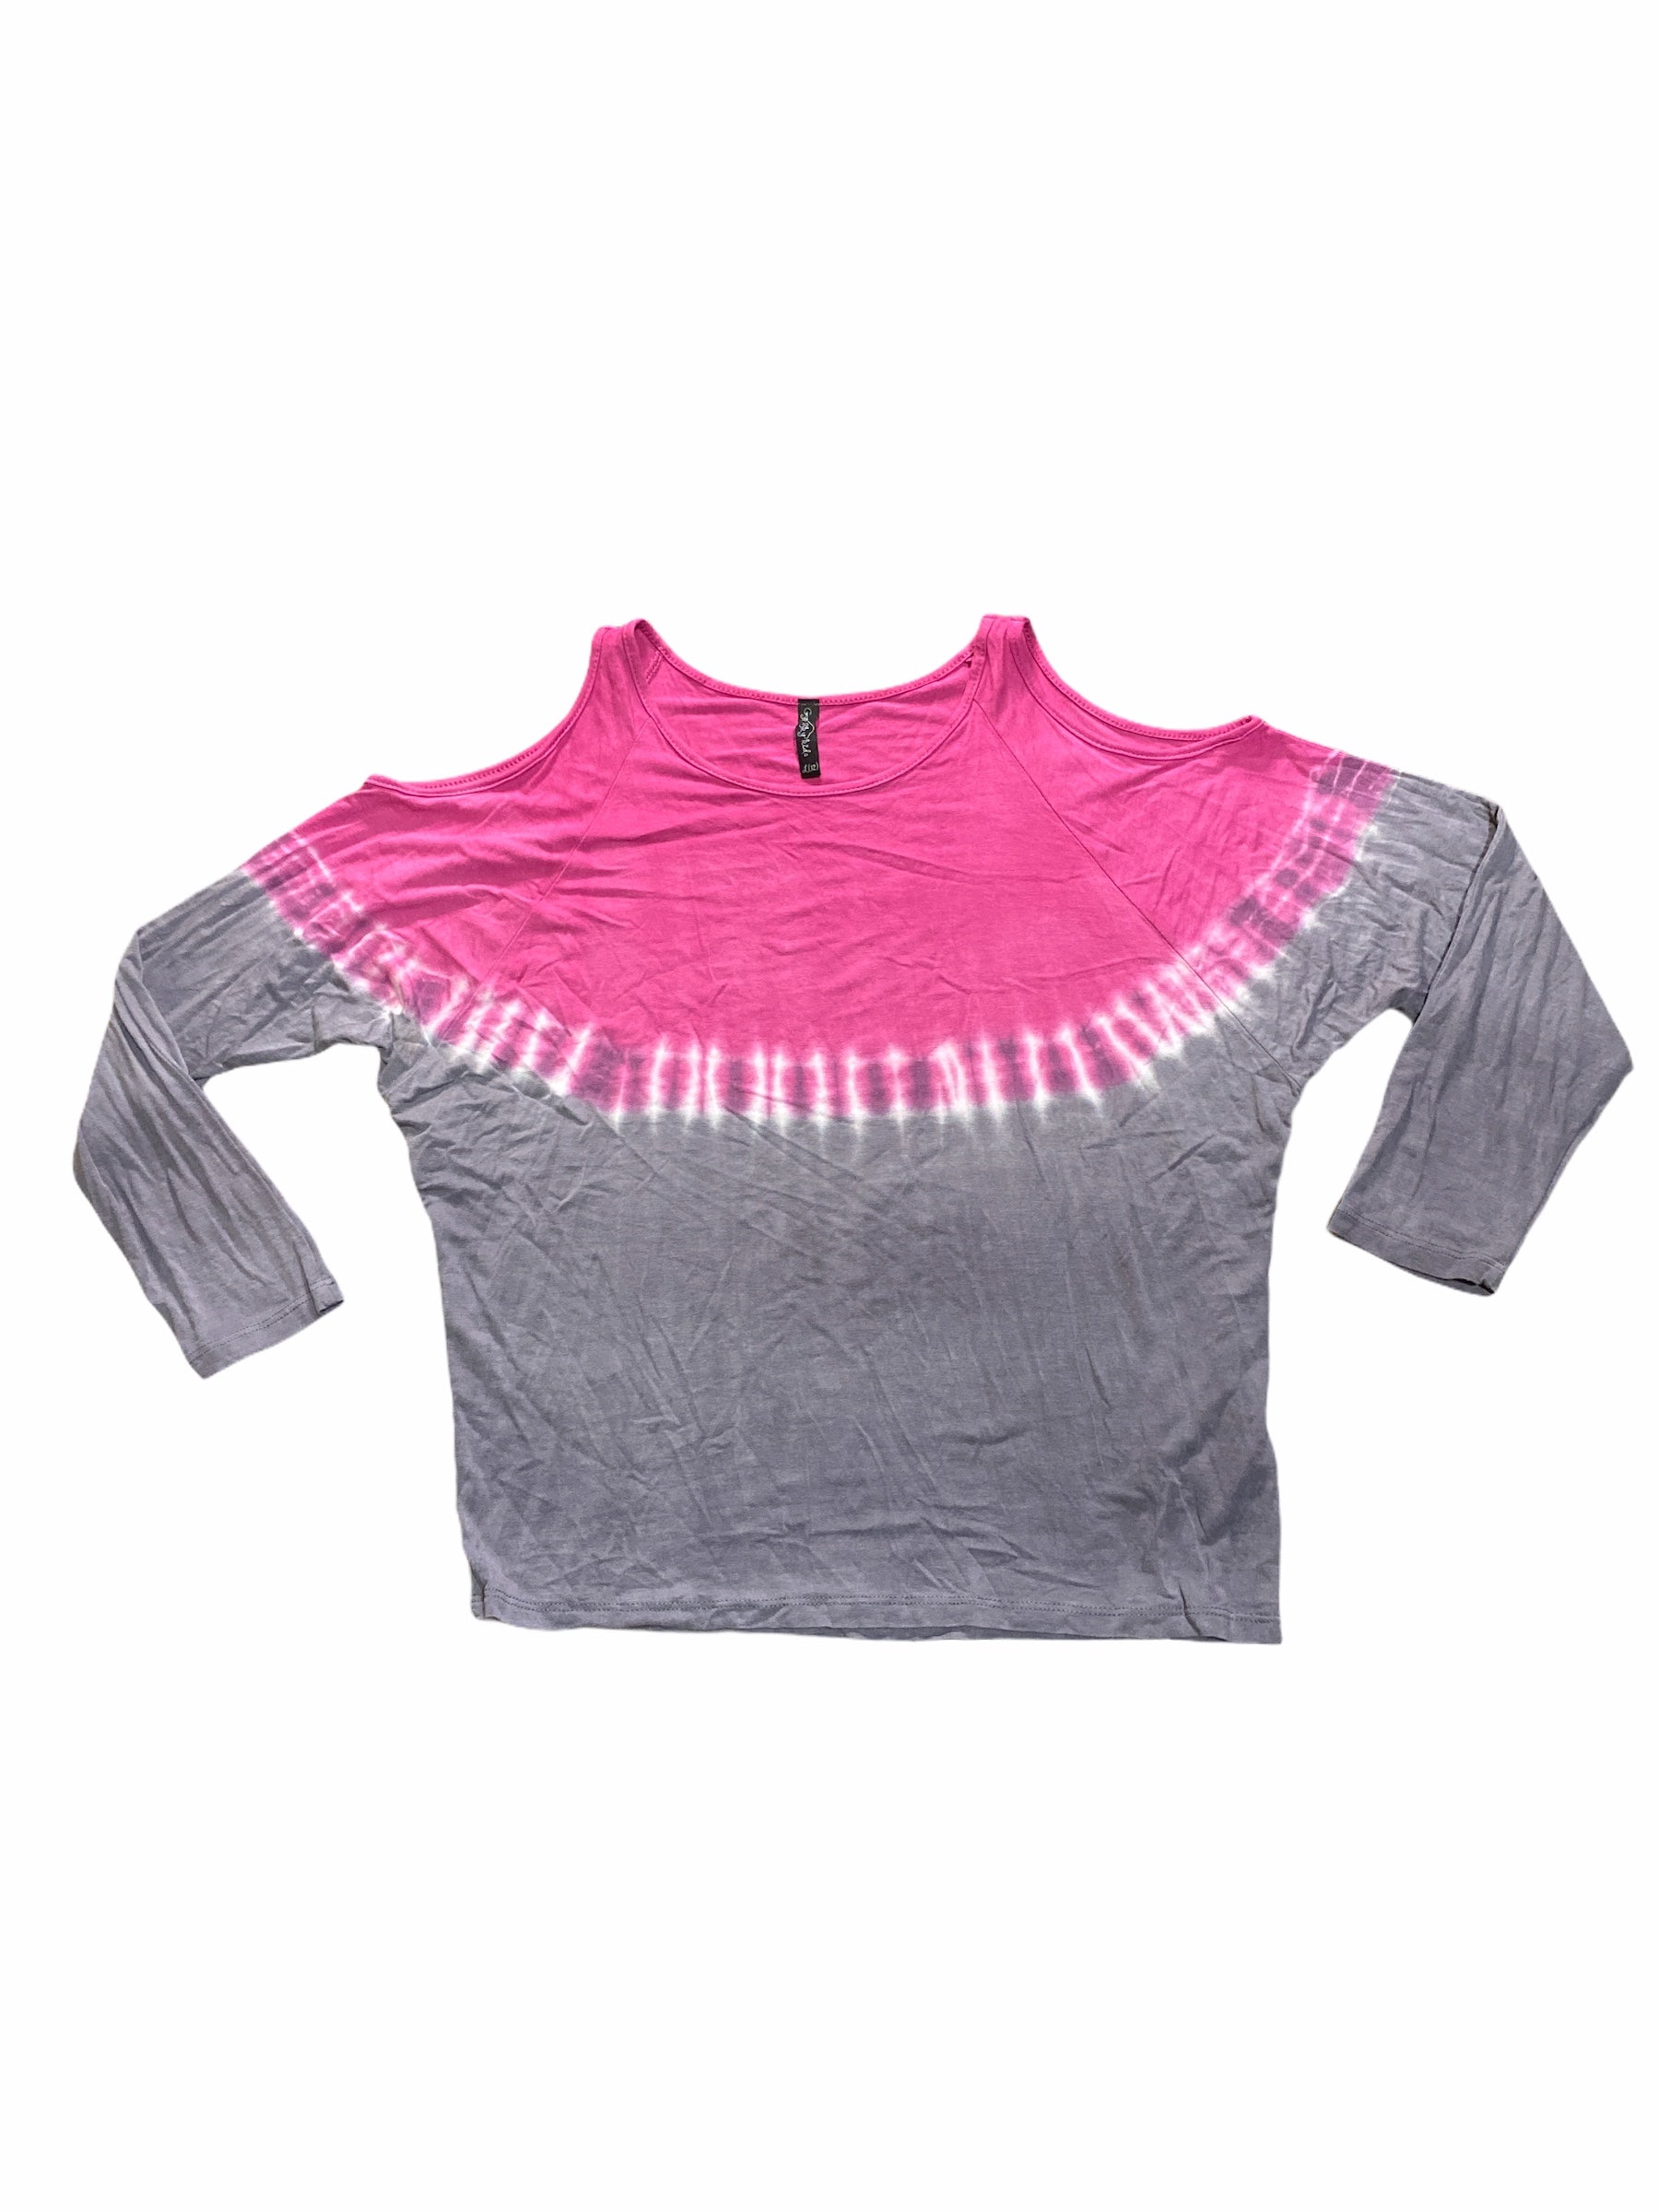 Gypsy Sky Kids Purple Tie Dye Top (12 Girls)